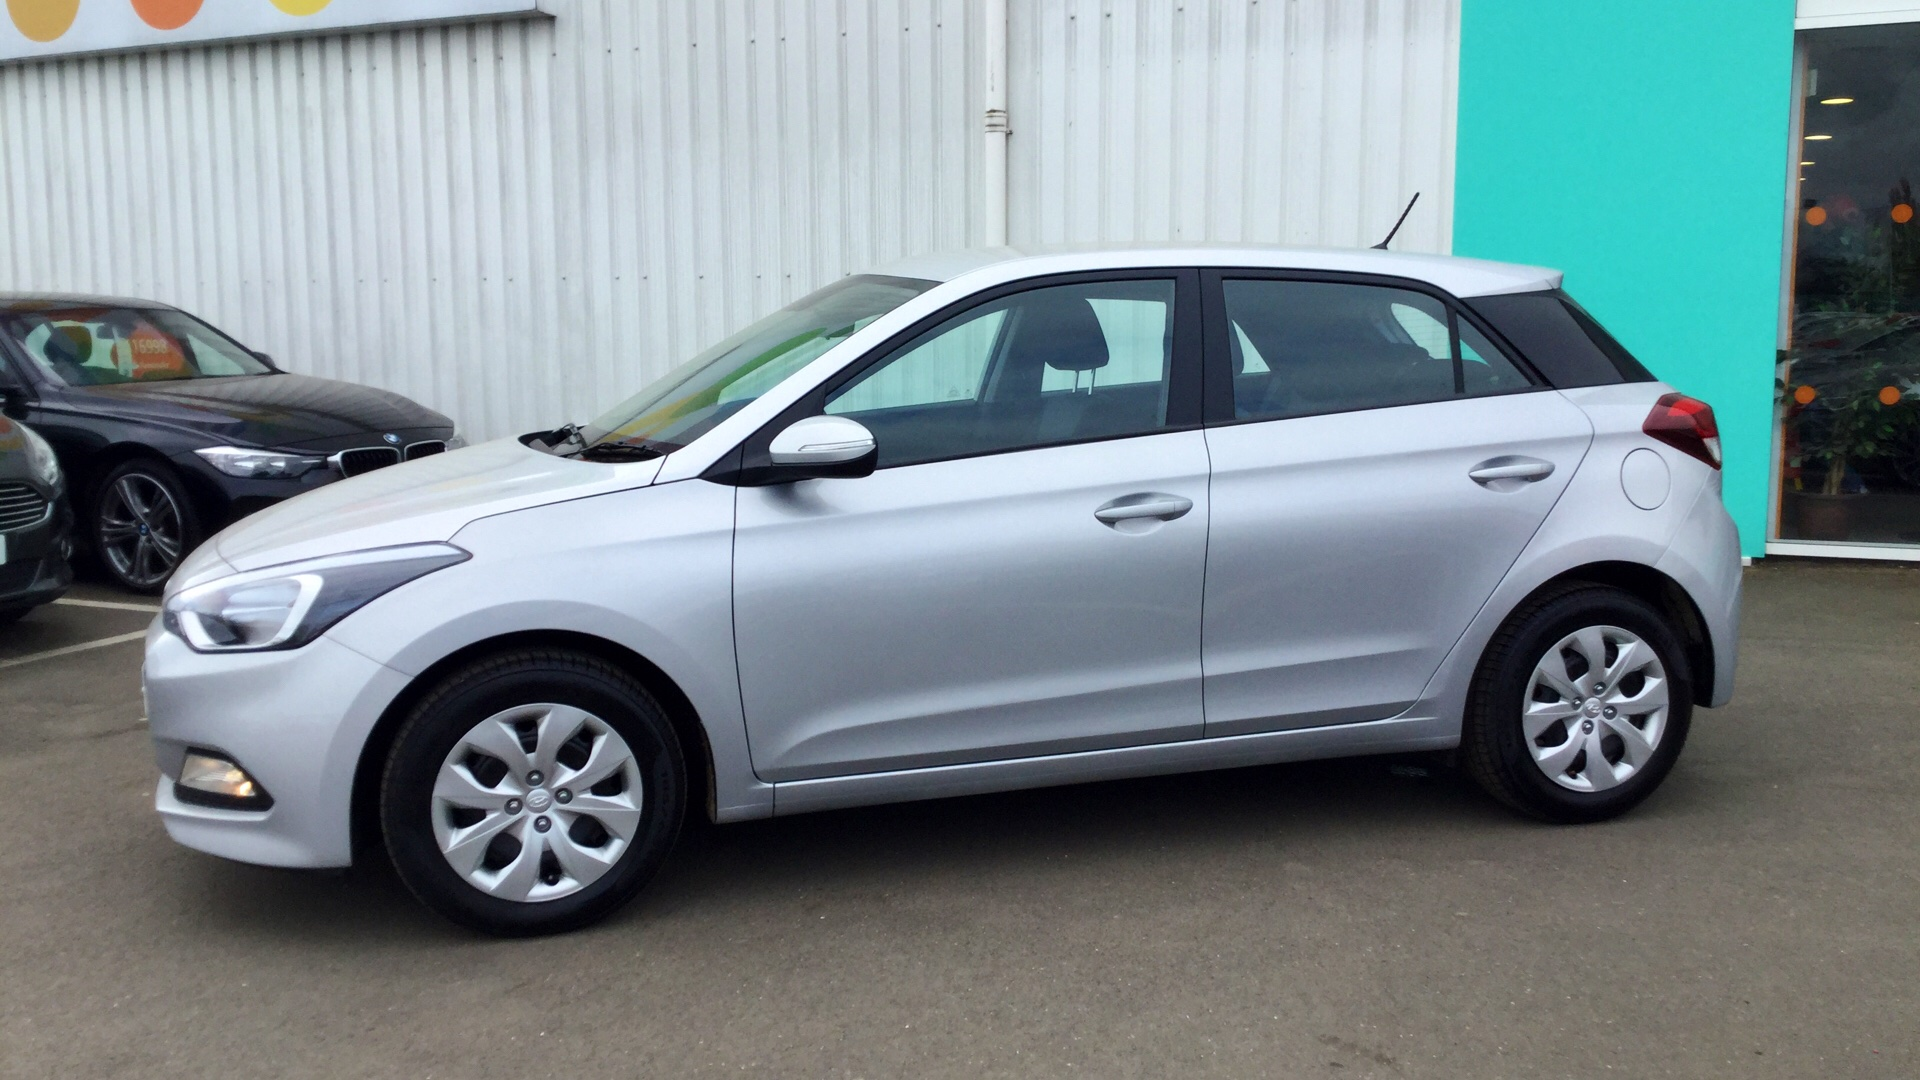 Hyundai I20 12 S Air